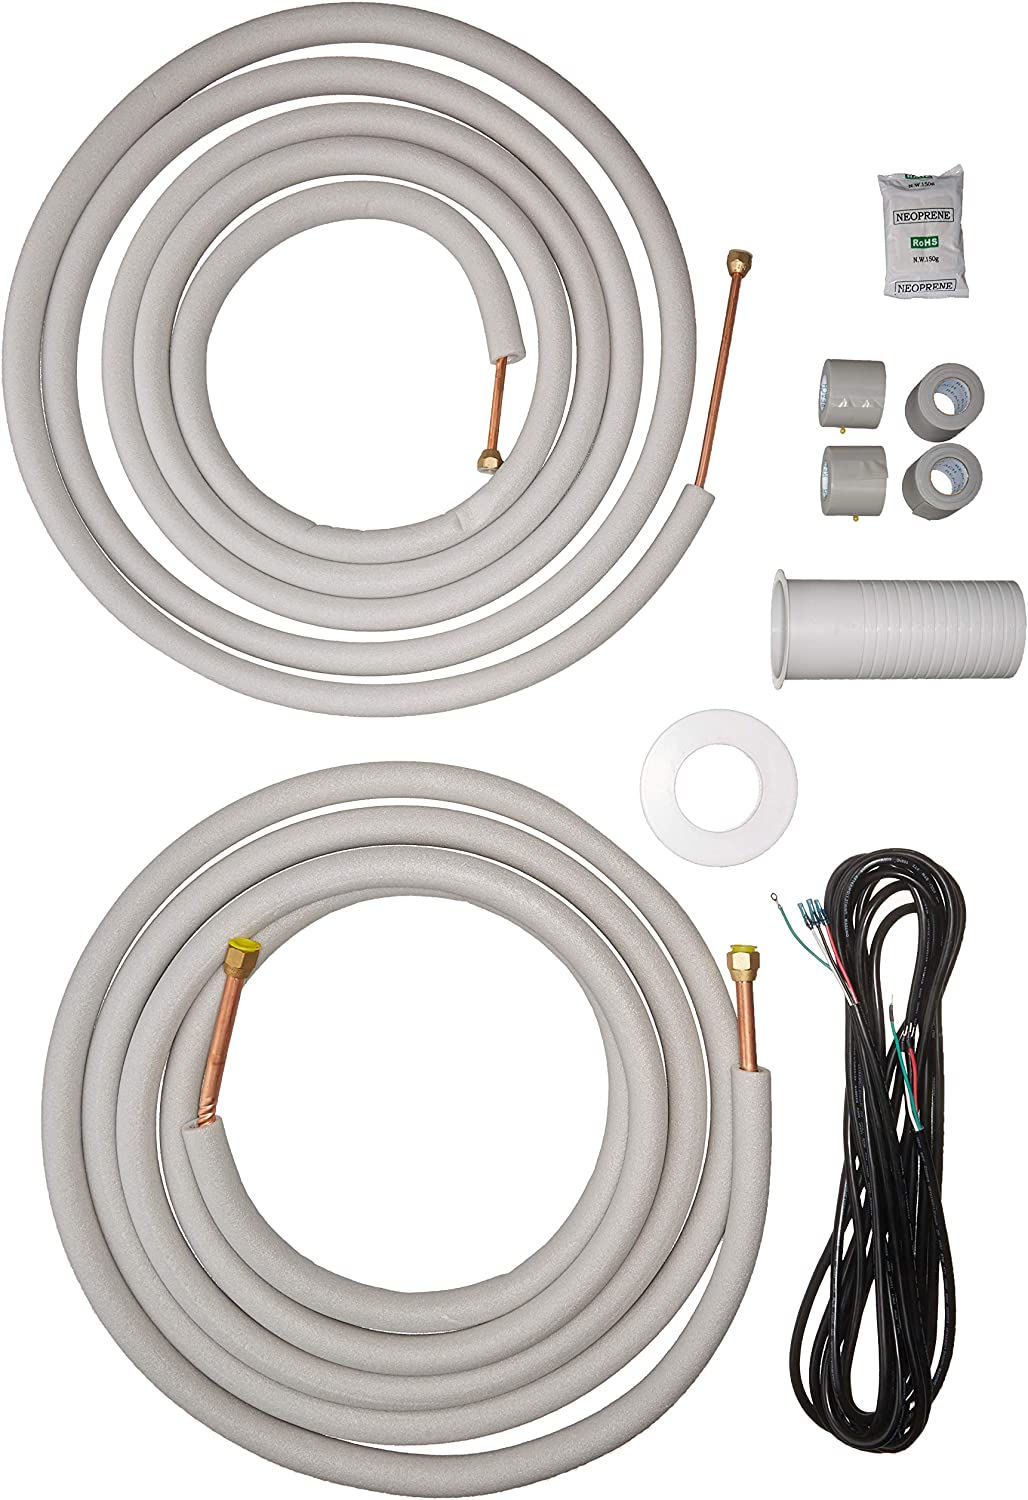 "Senville 25 Ft. Copper Pipes for Mini Split Air Conditioner, 3/8"" & 5/8"", White"